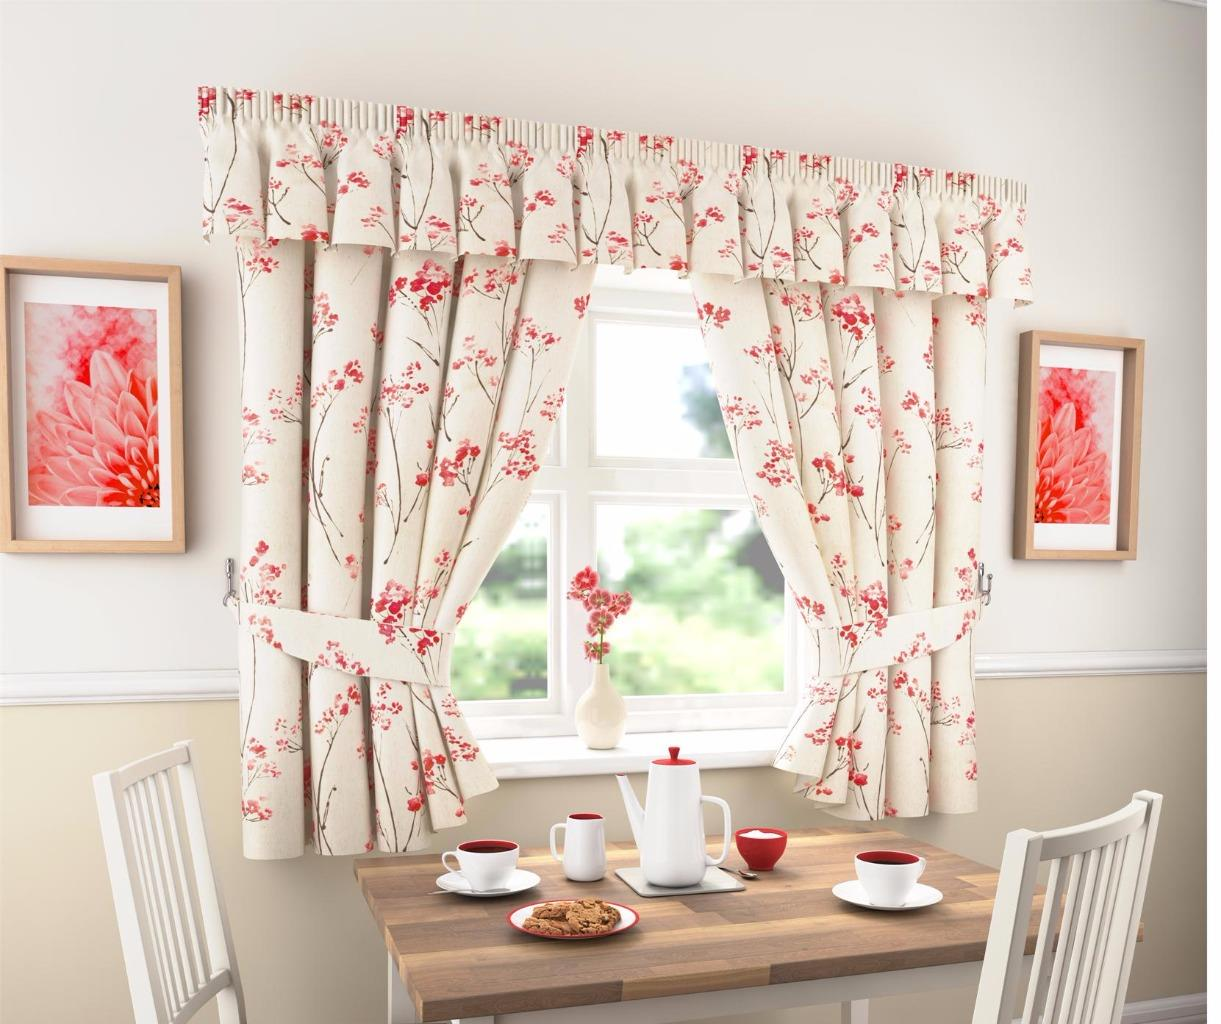 LYDIA THICK PLAIN FLORAL KITCHEN CURTAINS OR PELMET  Many Sizes Available  eBay